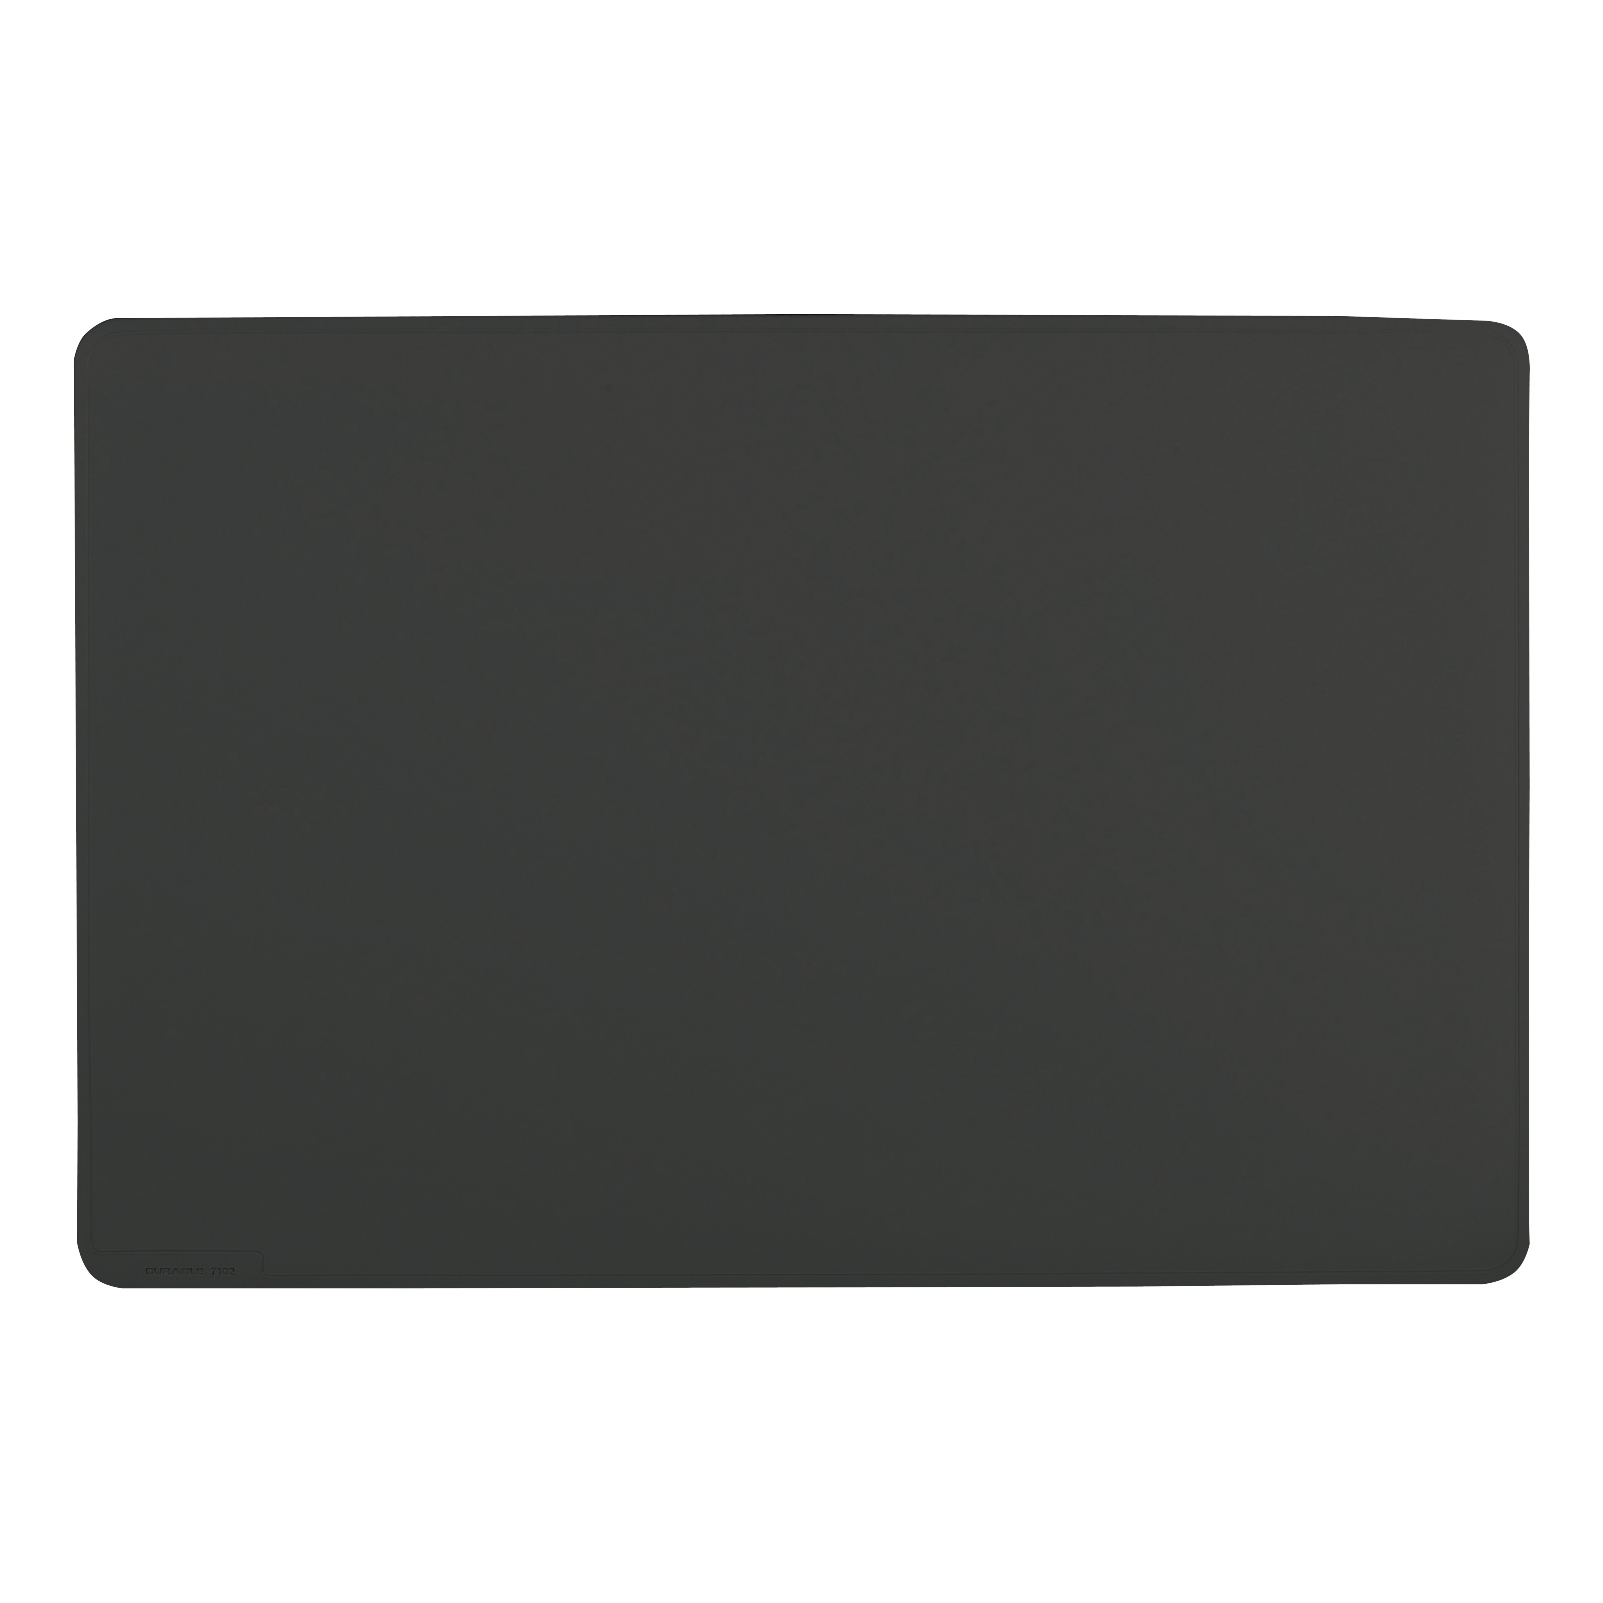 Durable Desk Mat Contoured Edge W650xD520mm Black Ref 7103/01